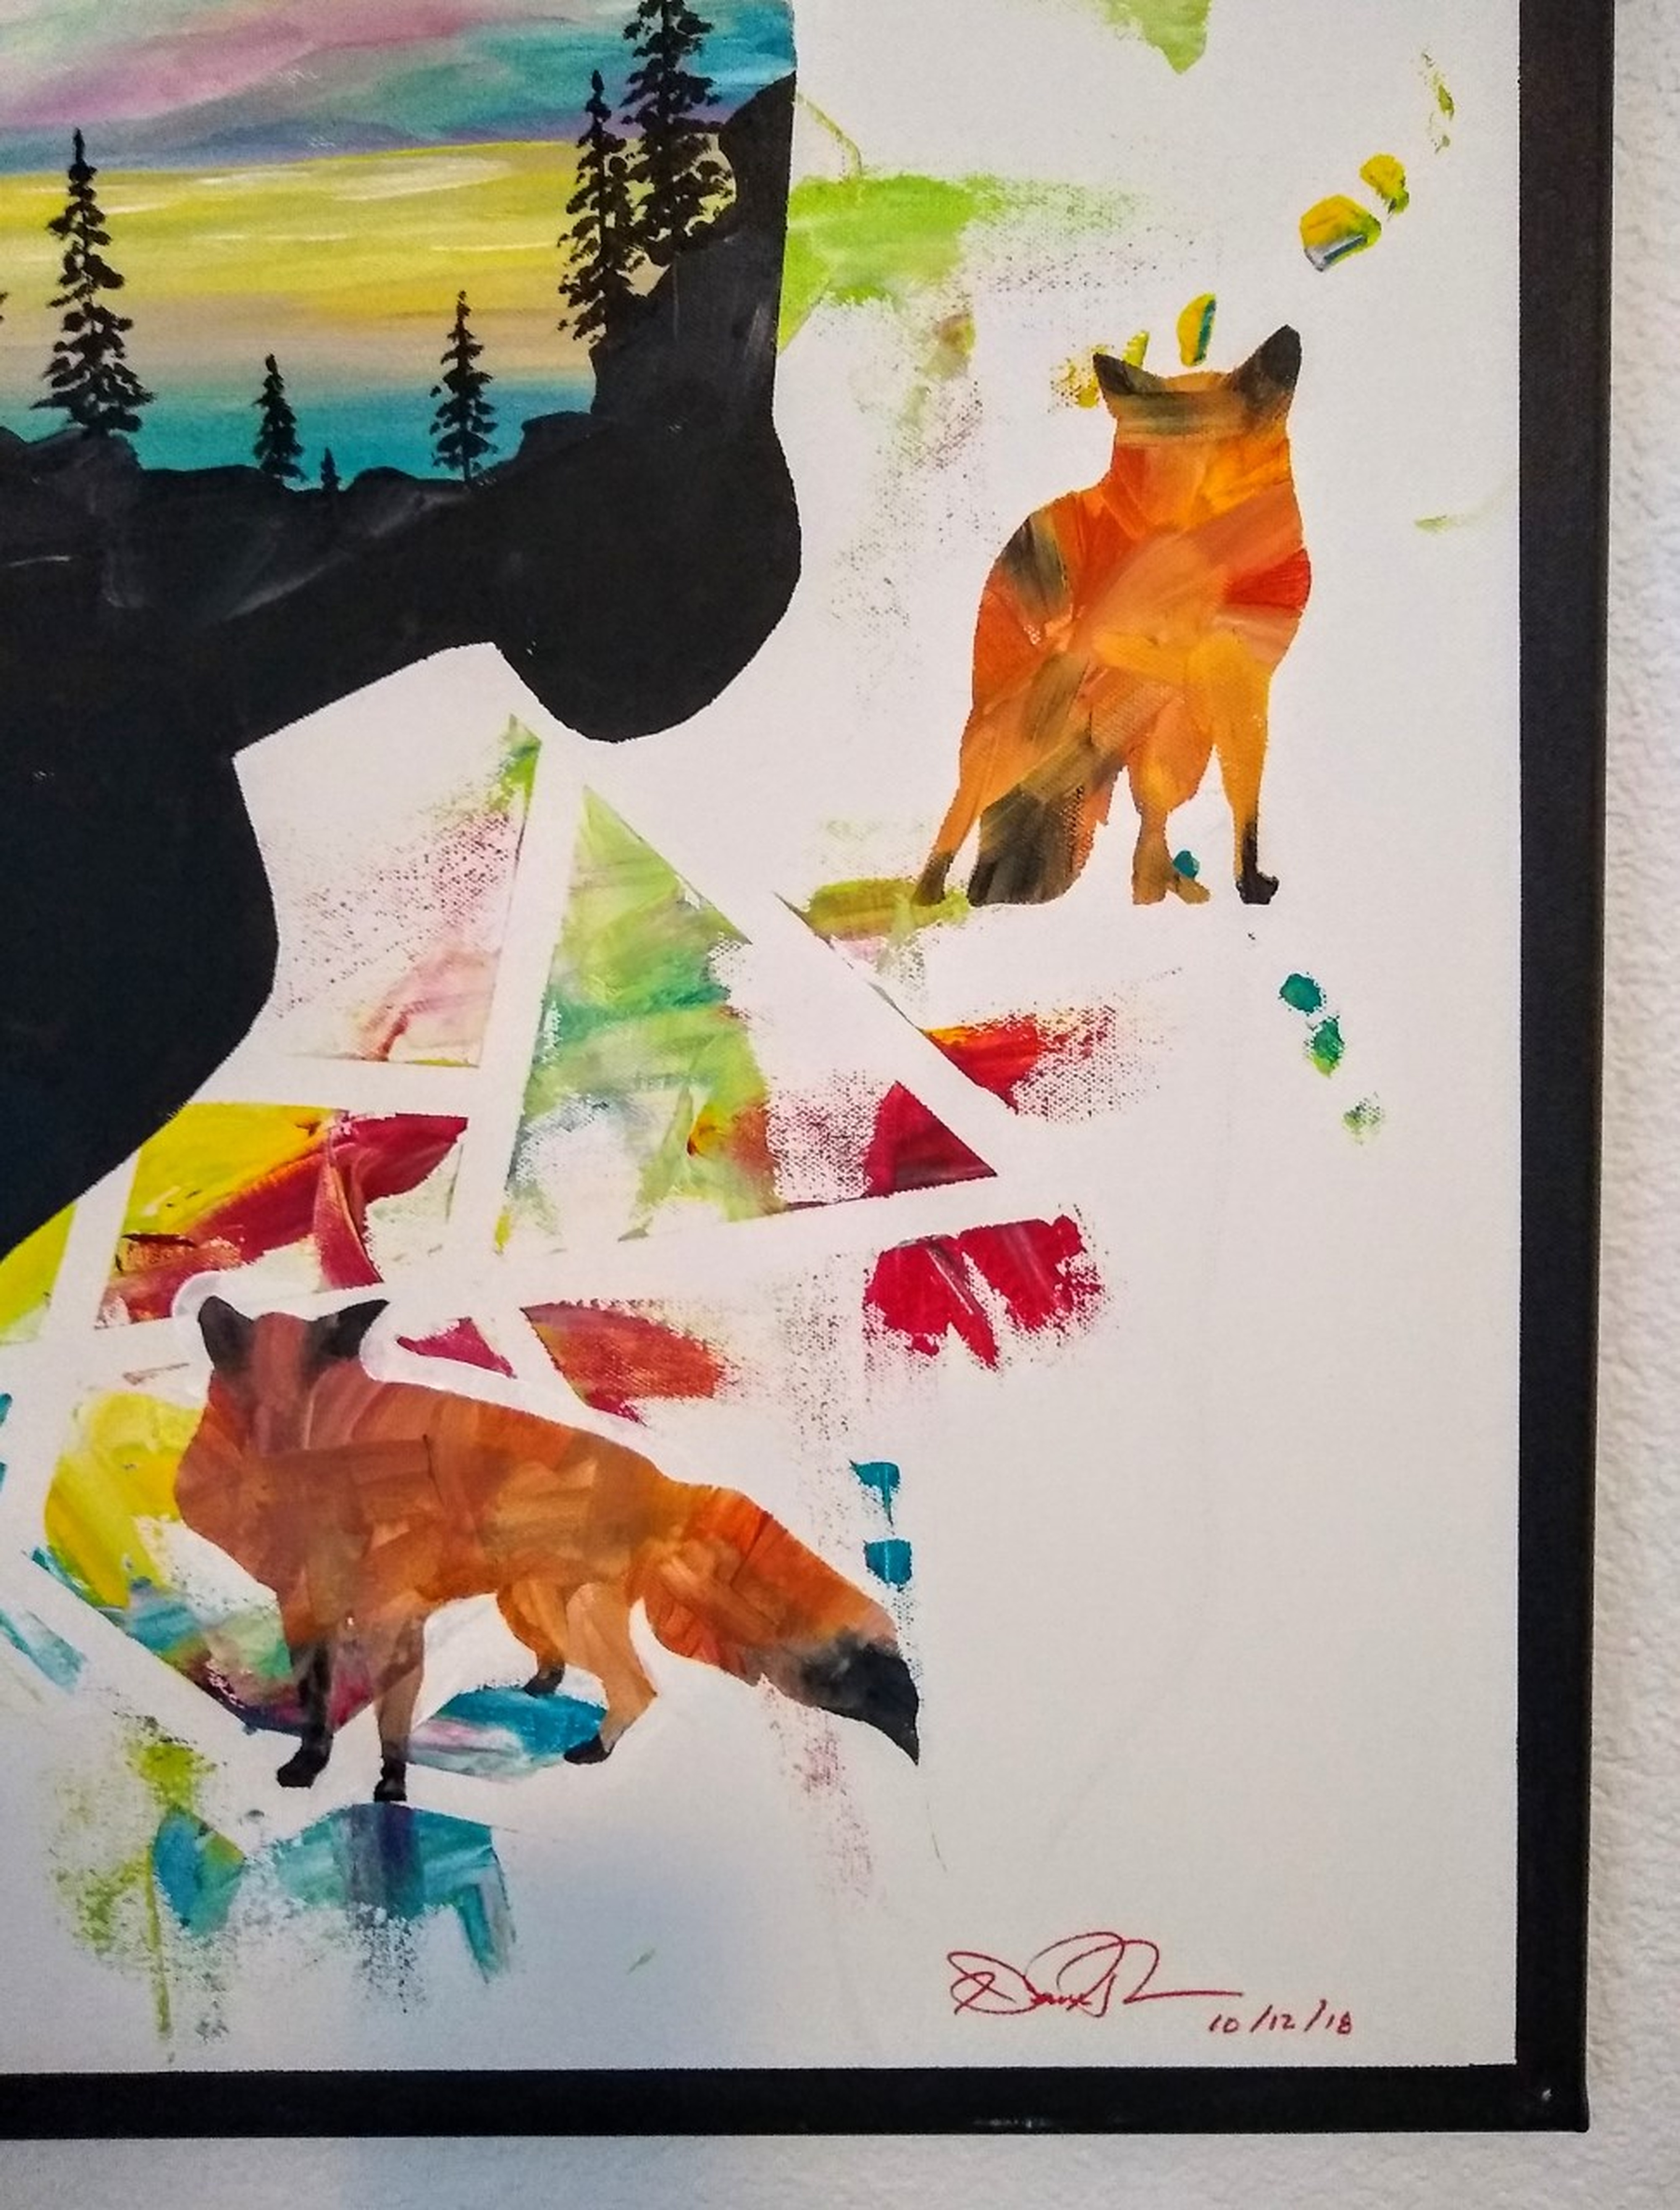 Fun with Foxes by Dane Hyman | ArtworkNetwork.com